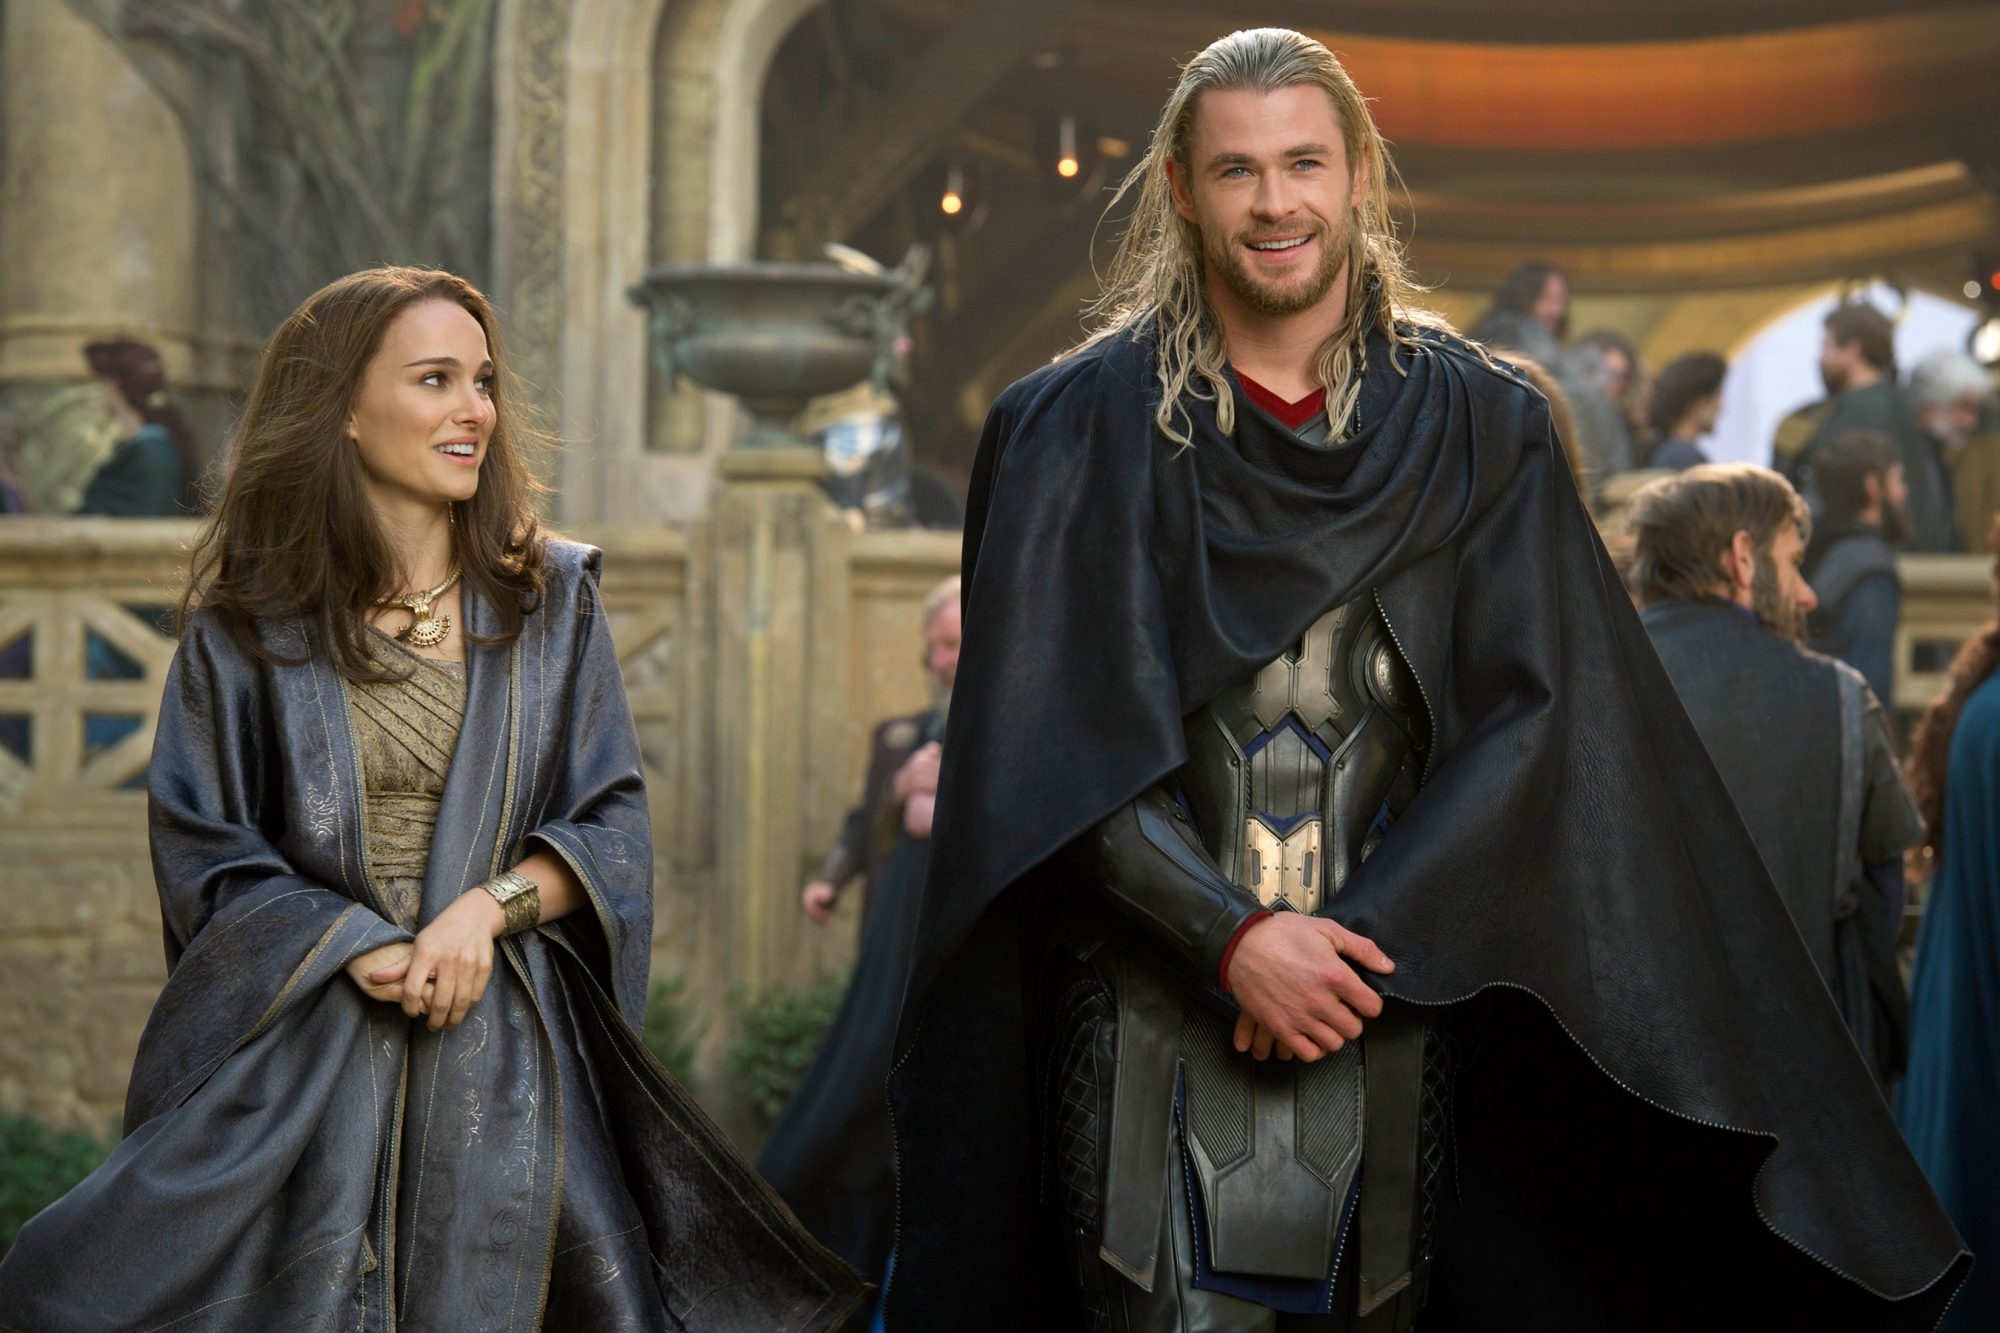 Thor: The Dark World (2013)Natalie Portman and Chris Hemsworth